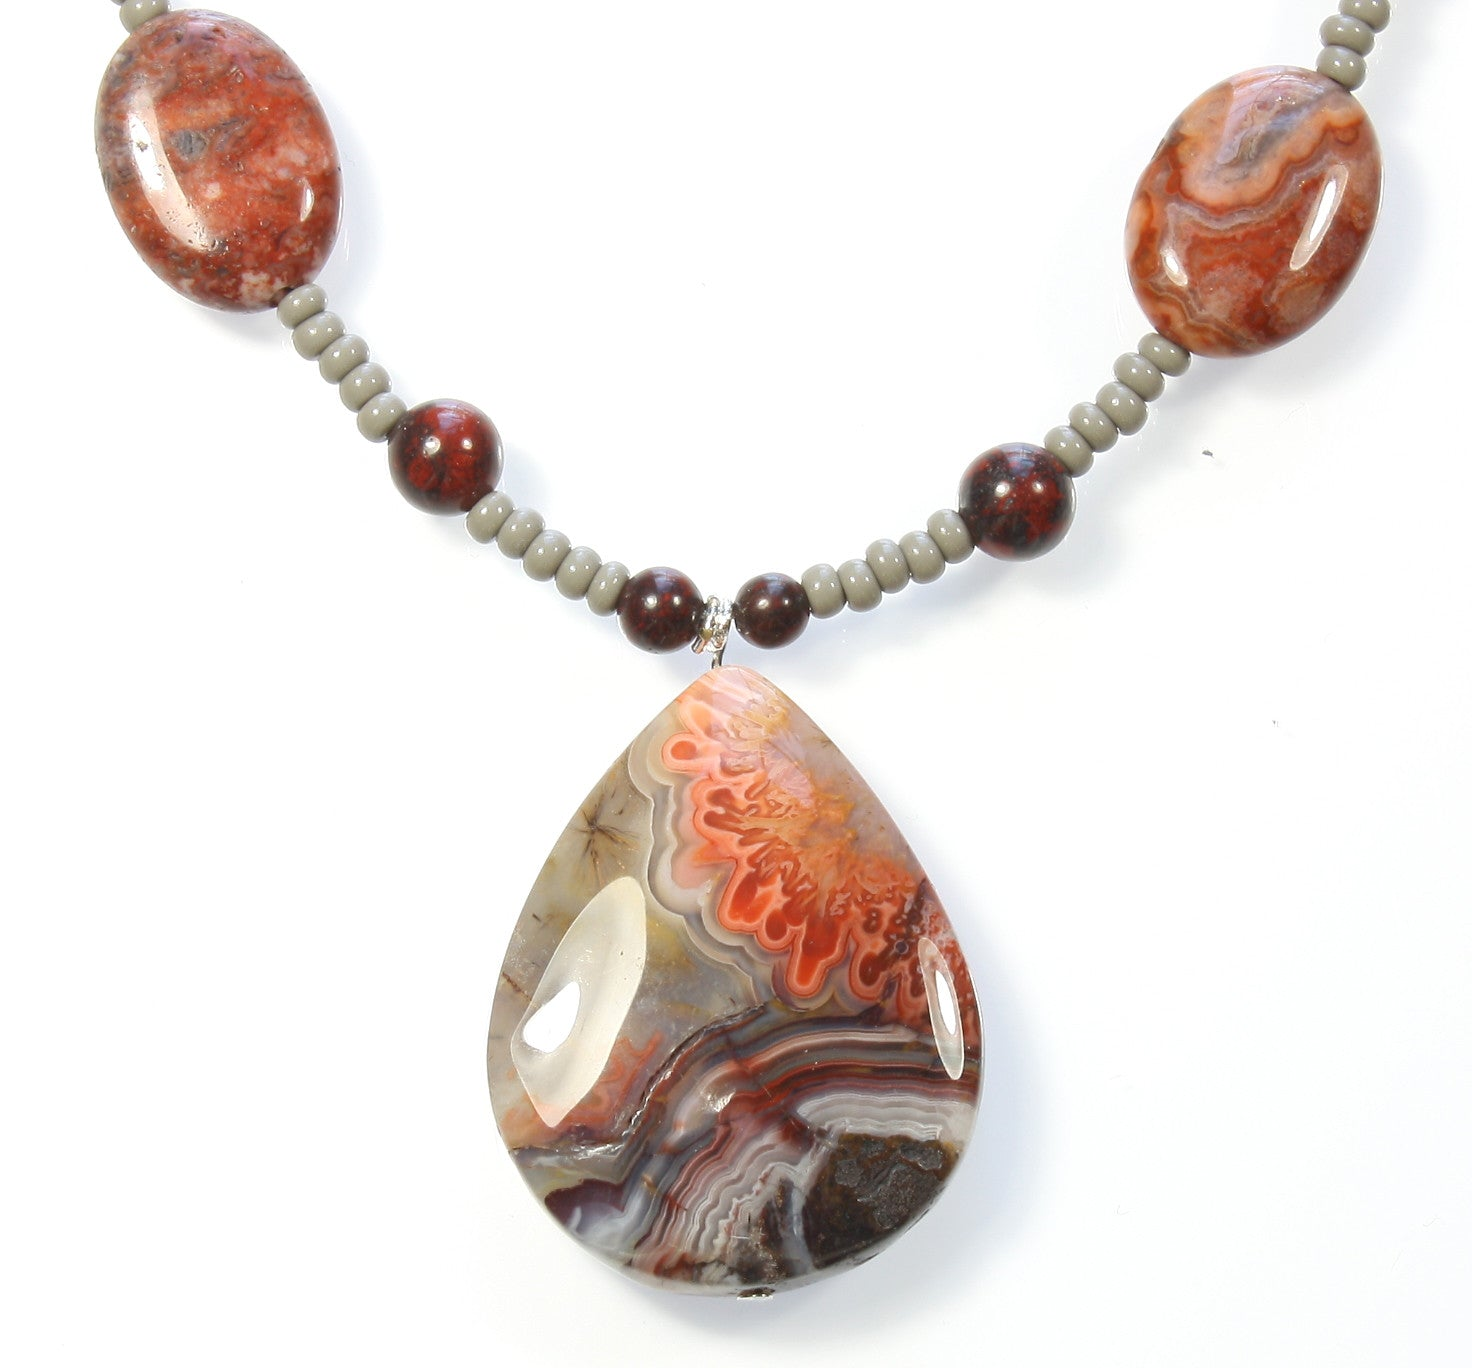 Designs from the earth crazy lace agate pendant necklace 23 crazy lace agate necklace designs from the earth style arthouse aloadofball Choice Image